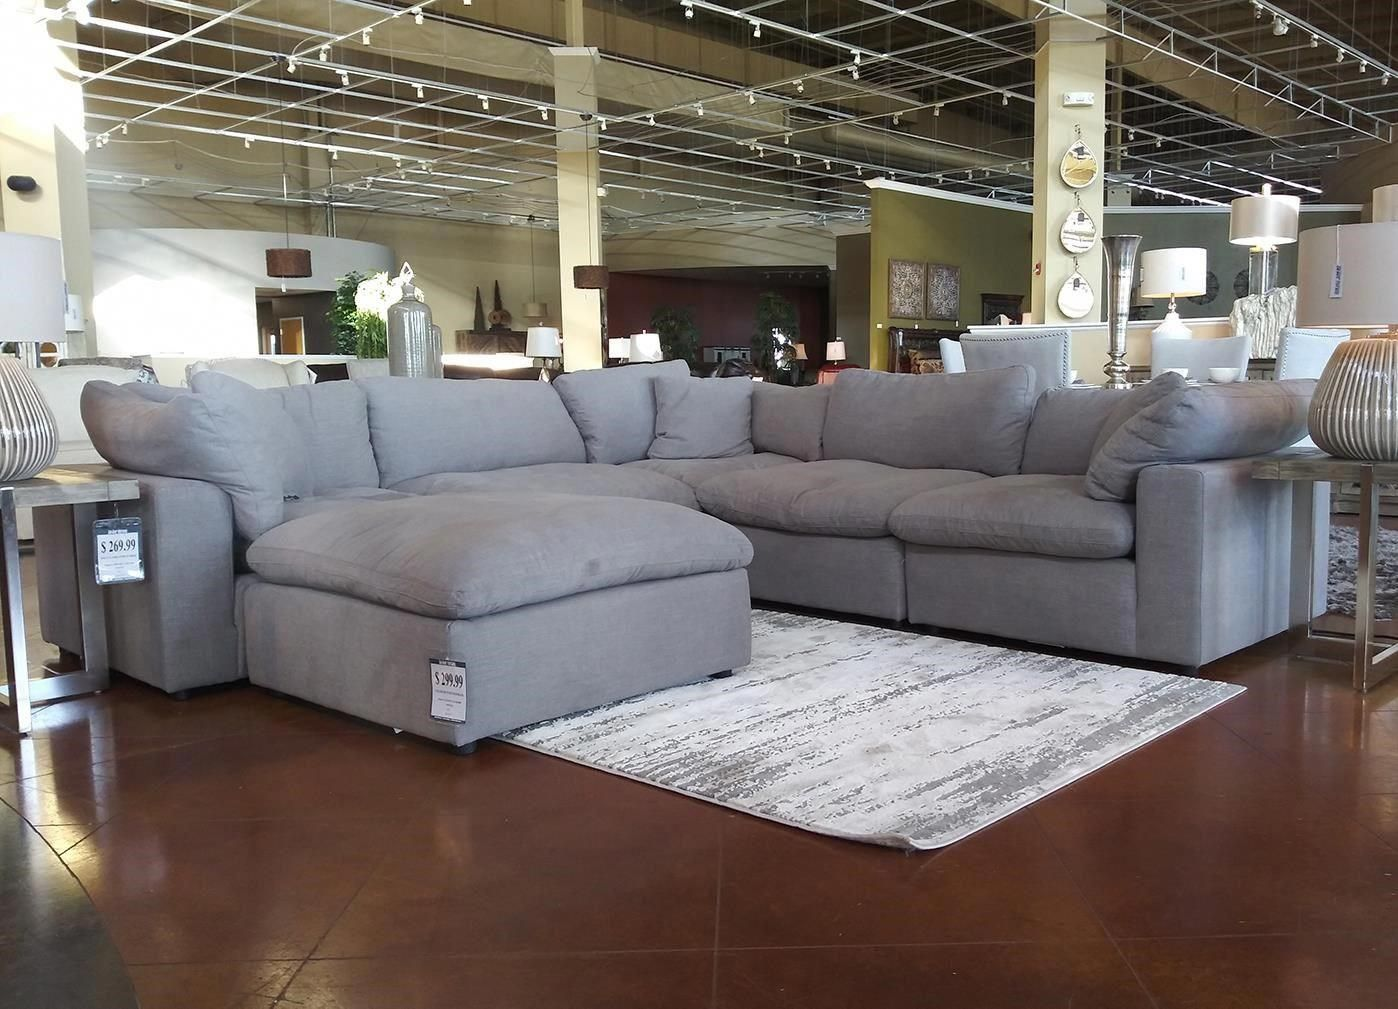 Pin By Erica Owens On Warm Living Room Design In 2020 Couches Living Room Sectional Warm Living Room Design Most Comfortable Couch